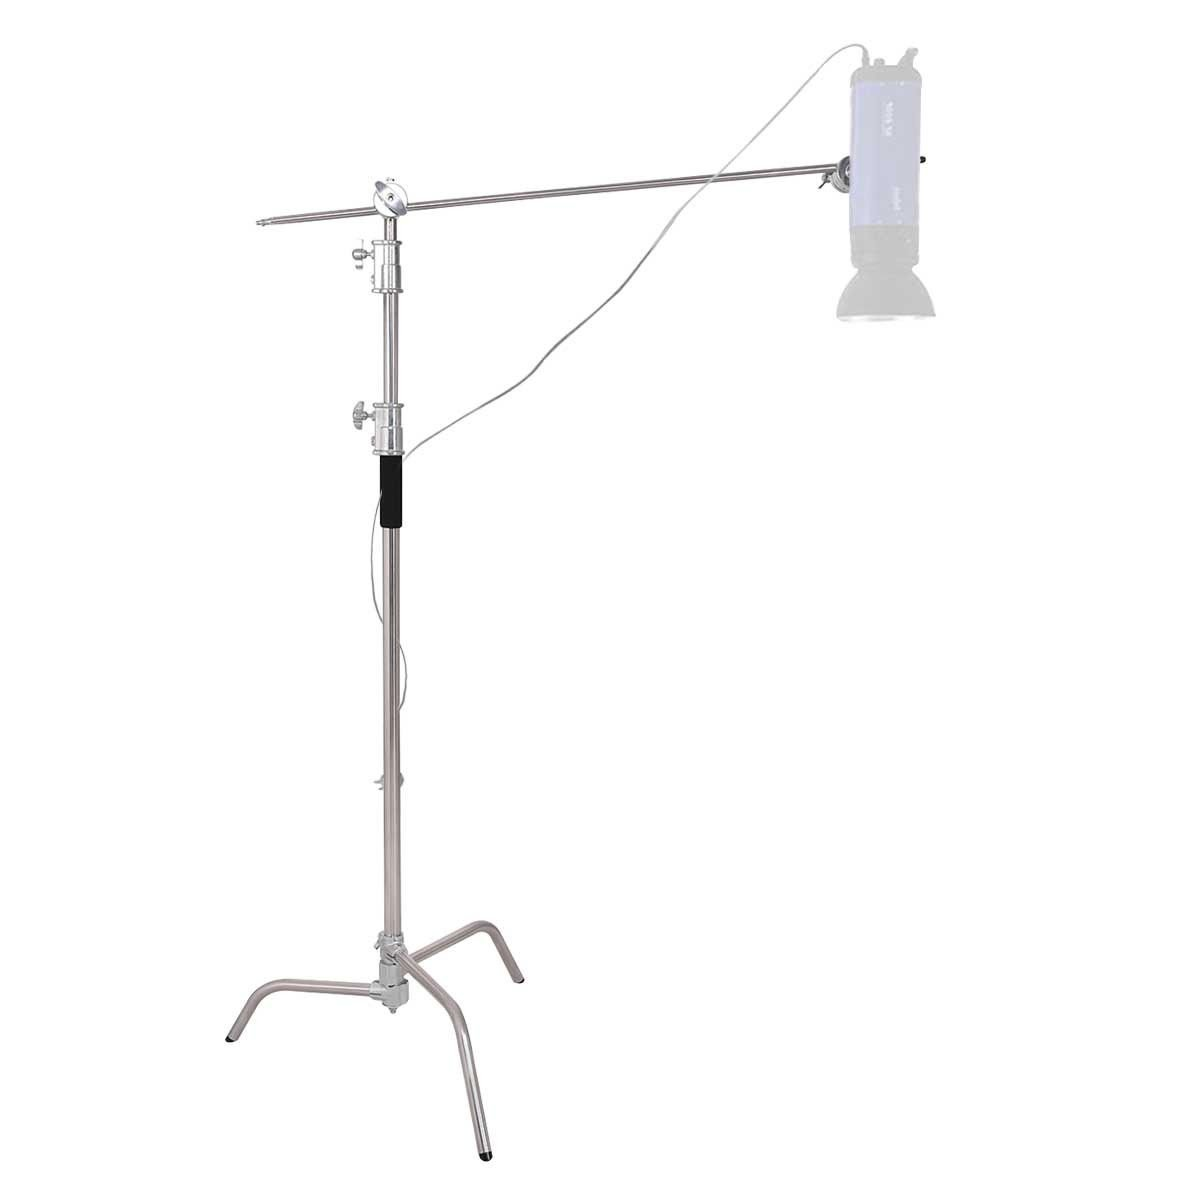 Safstar Pro Heavy Duty C-Stand, Adjustable Leg, 100% Stainless Steel w/Grip Head for Photography Studio Video Reflector, Monolights, Softboxes, Umbrellas by S AFSTAR